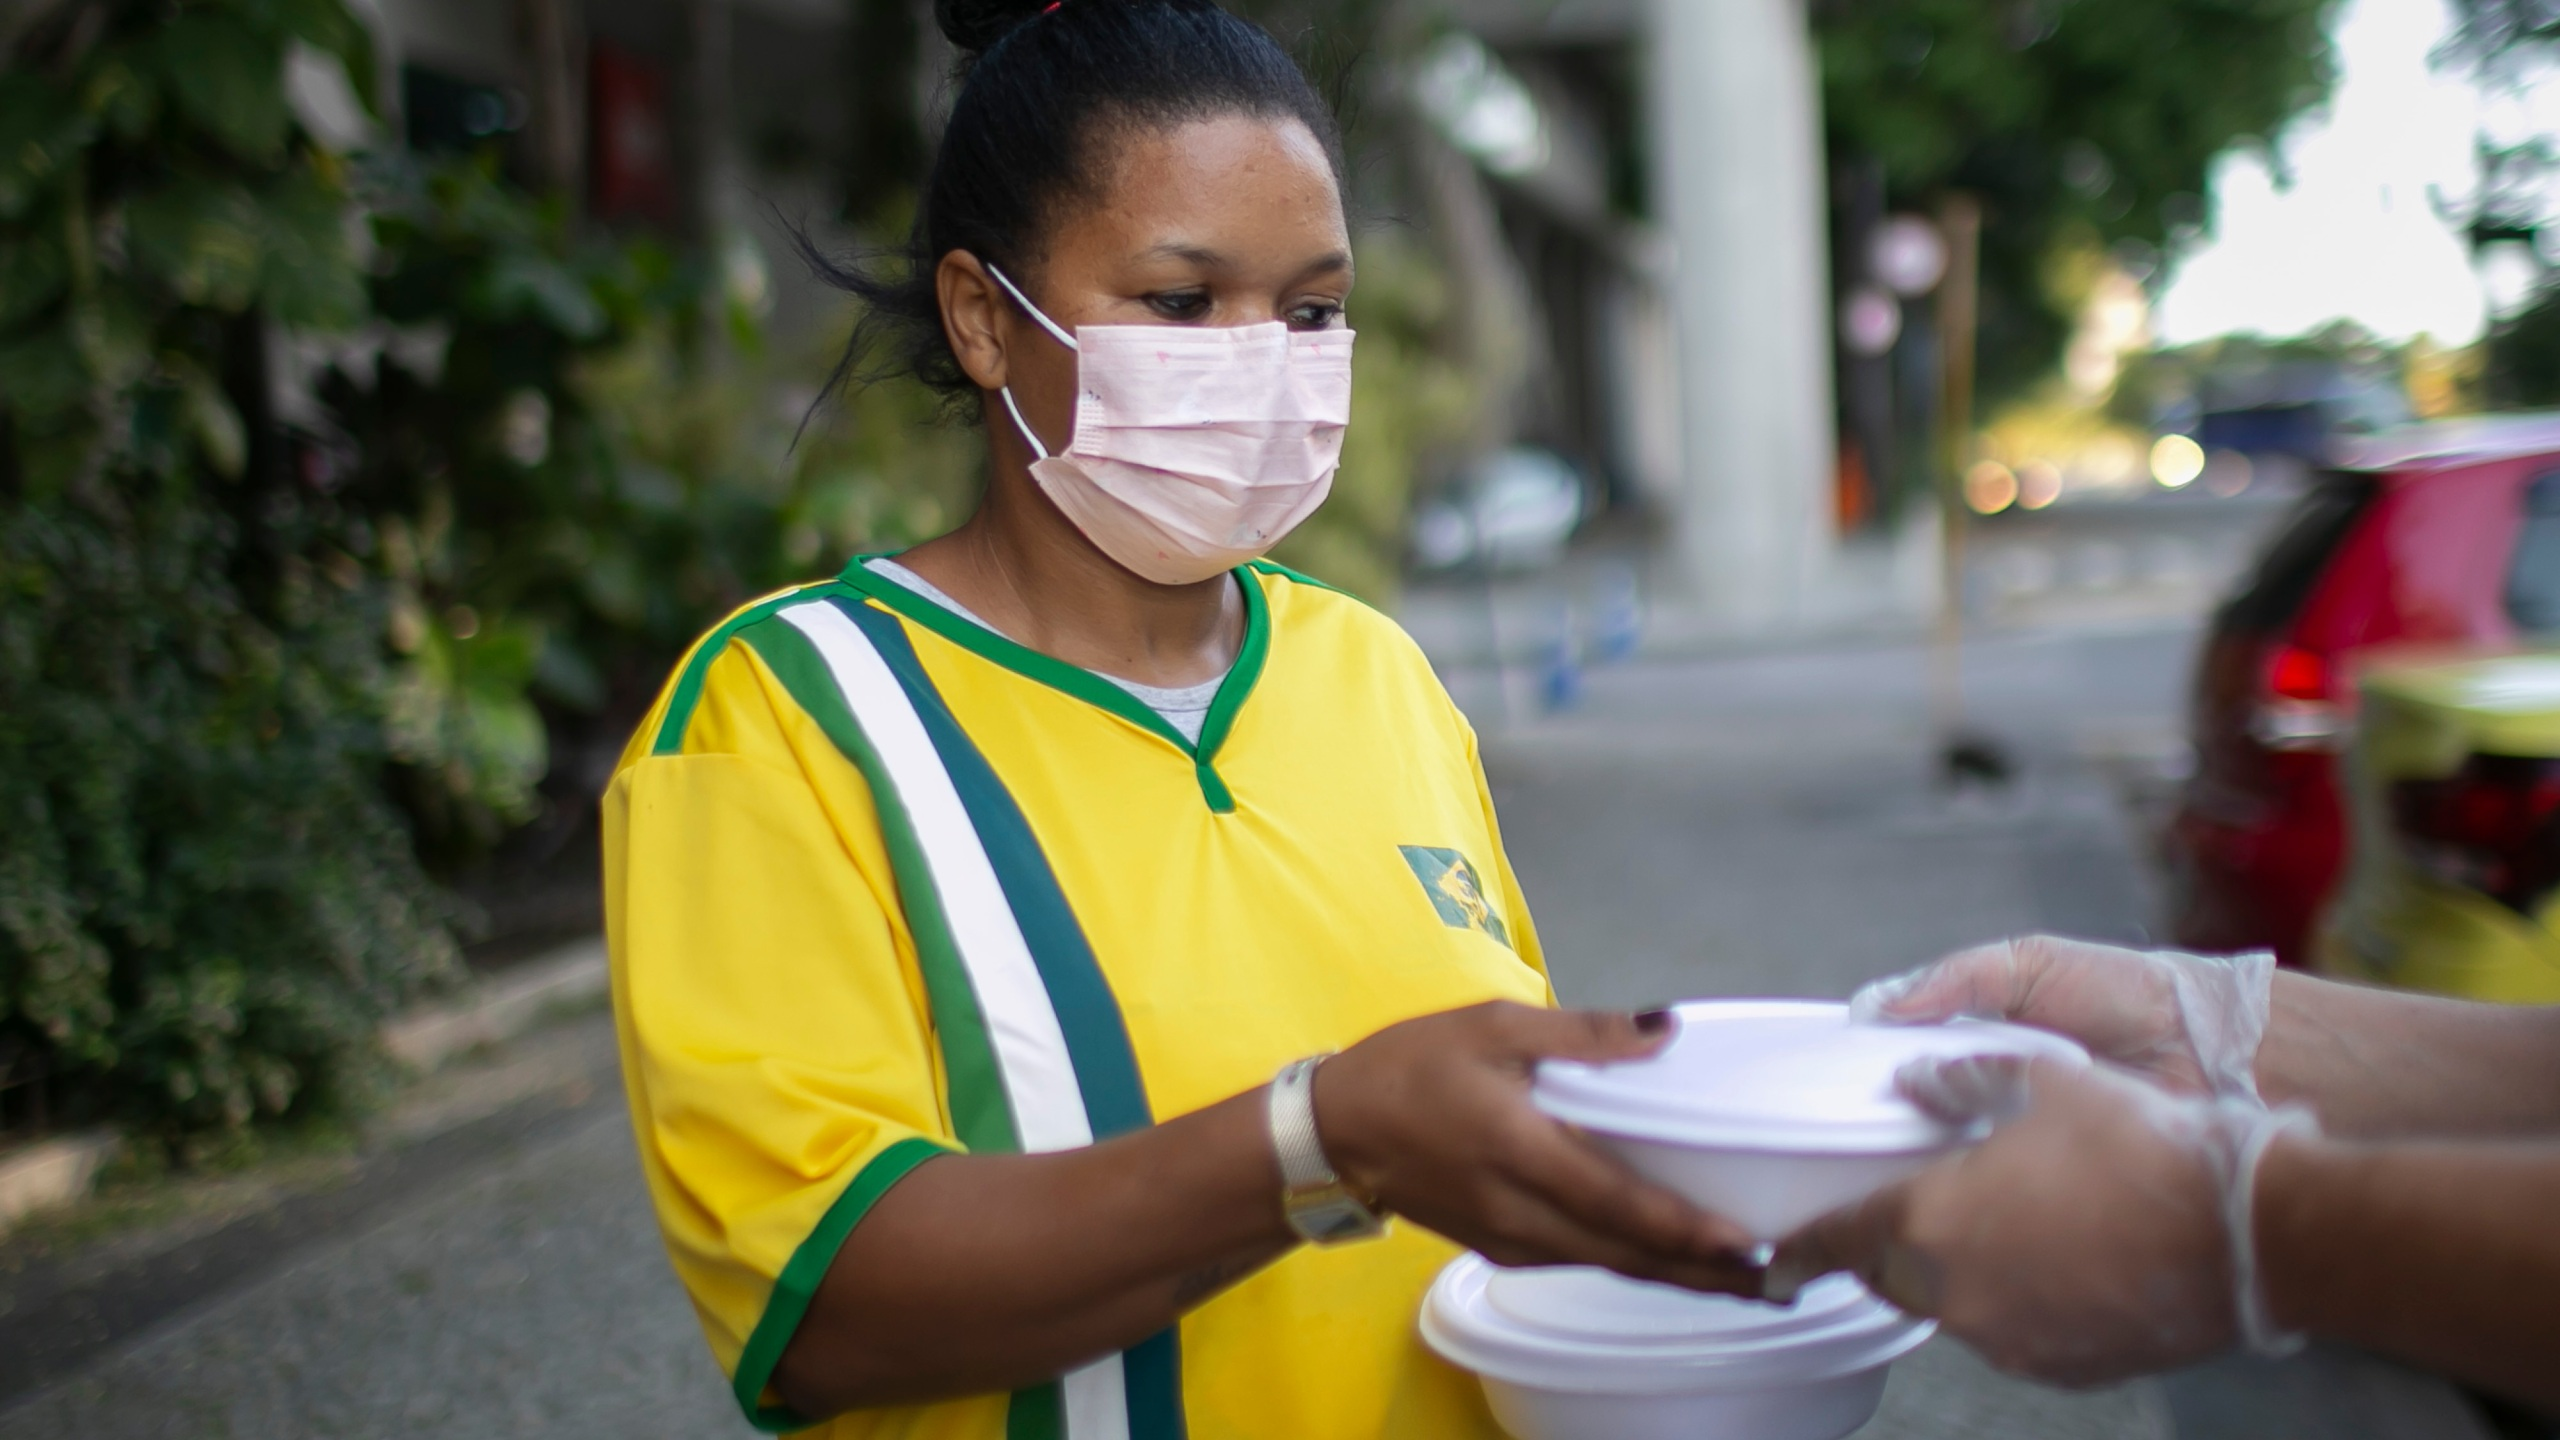 A homeless and unemployed person receives food and water from volunteers of the 'Covid Sem Fome' on April 22, 2020 in Rio de Janeiro, Brazil. (Bruna Prado/Getty Images)